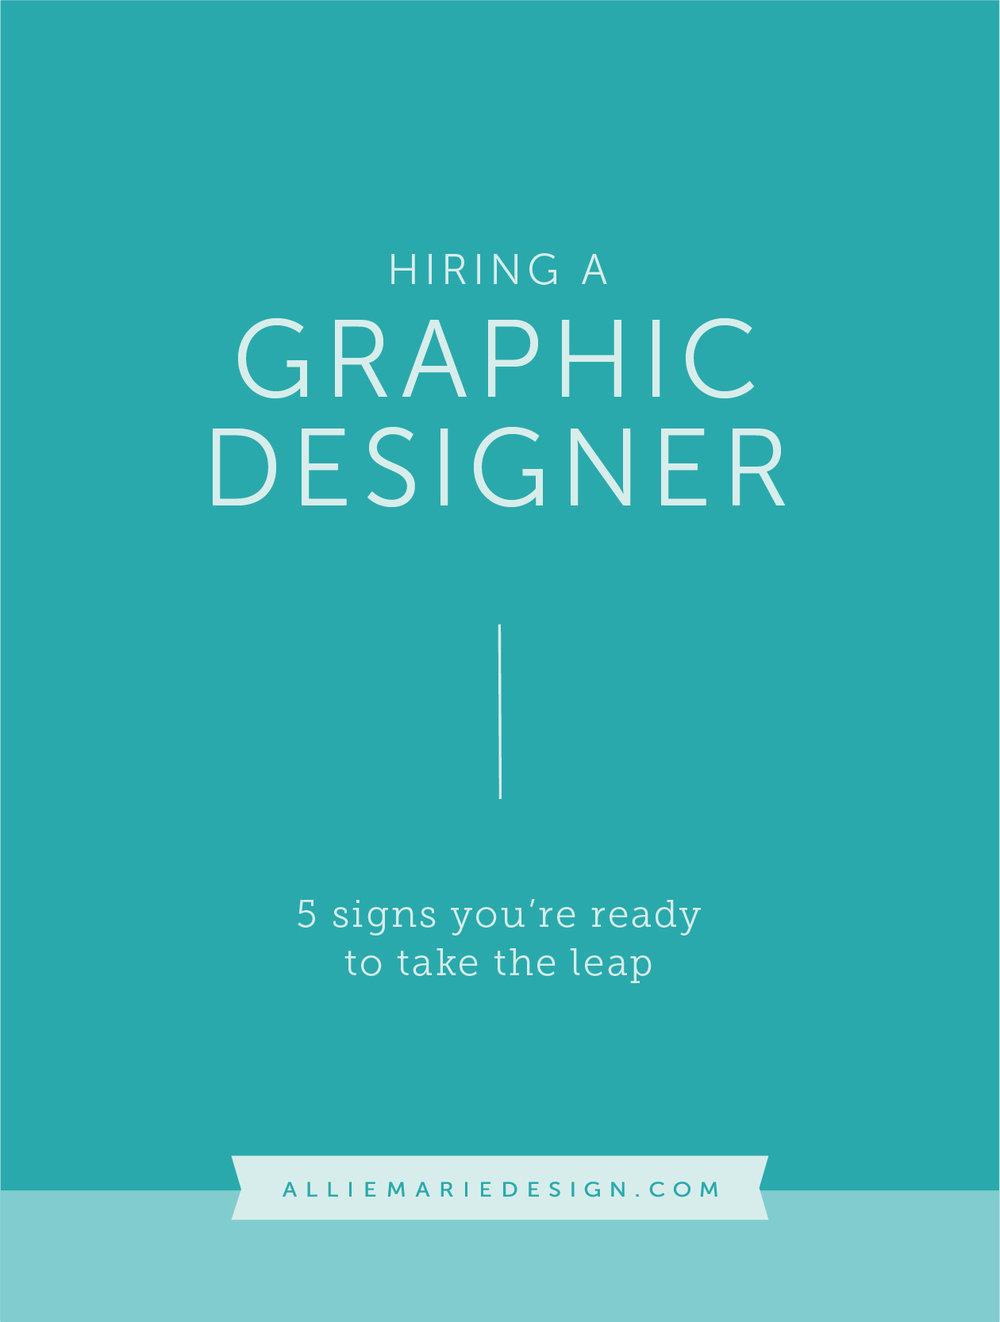 Hiring a Graphic Designer: 5 signs you're ready to take the leap  |  AllieMarie Design Blog